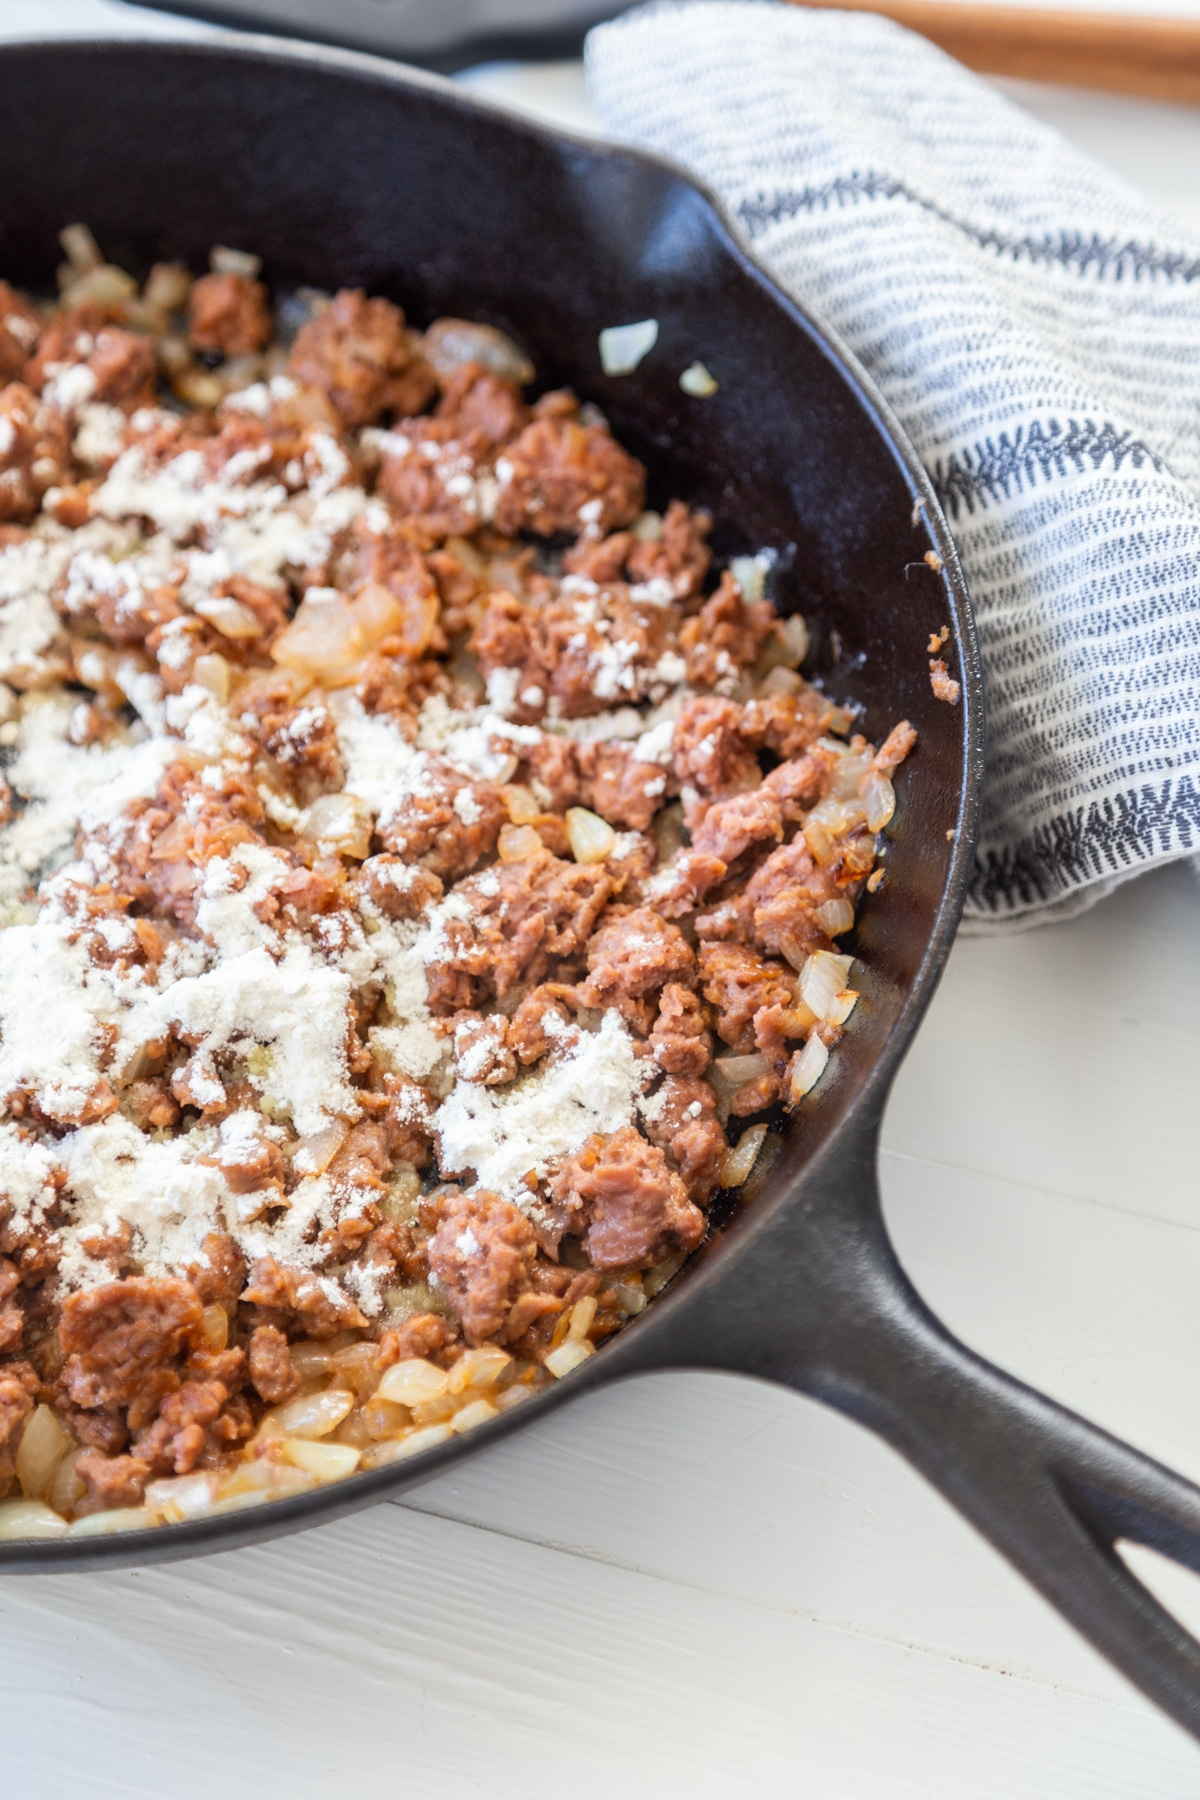 An iron skillet with ground beef and flour sprinkled on top of the meat.